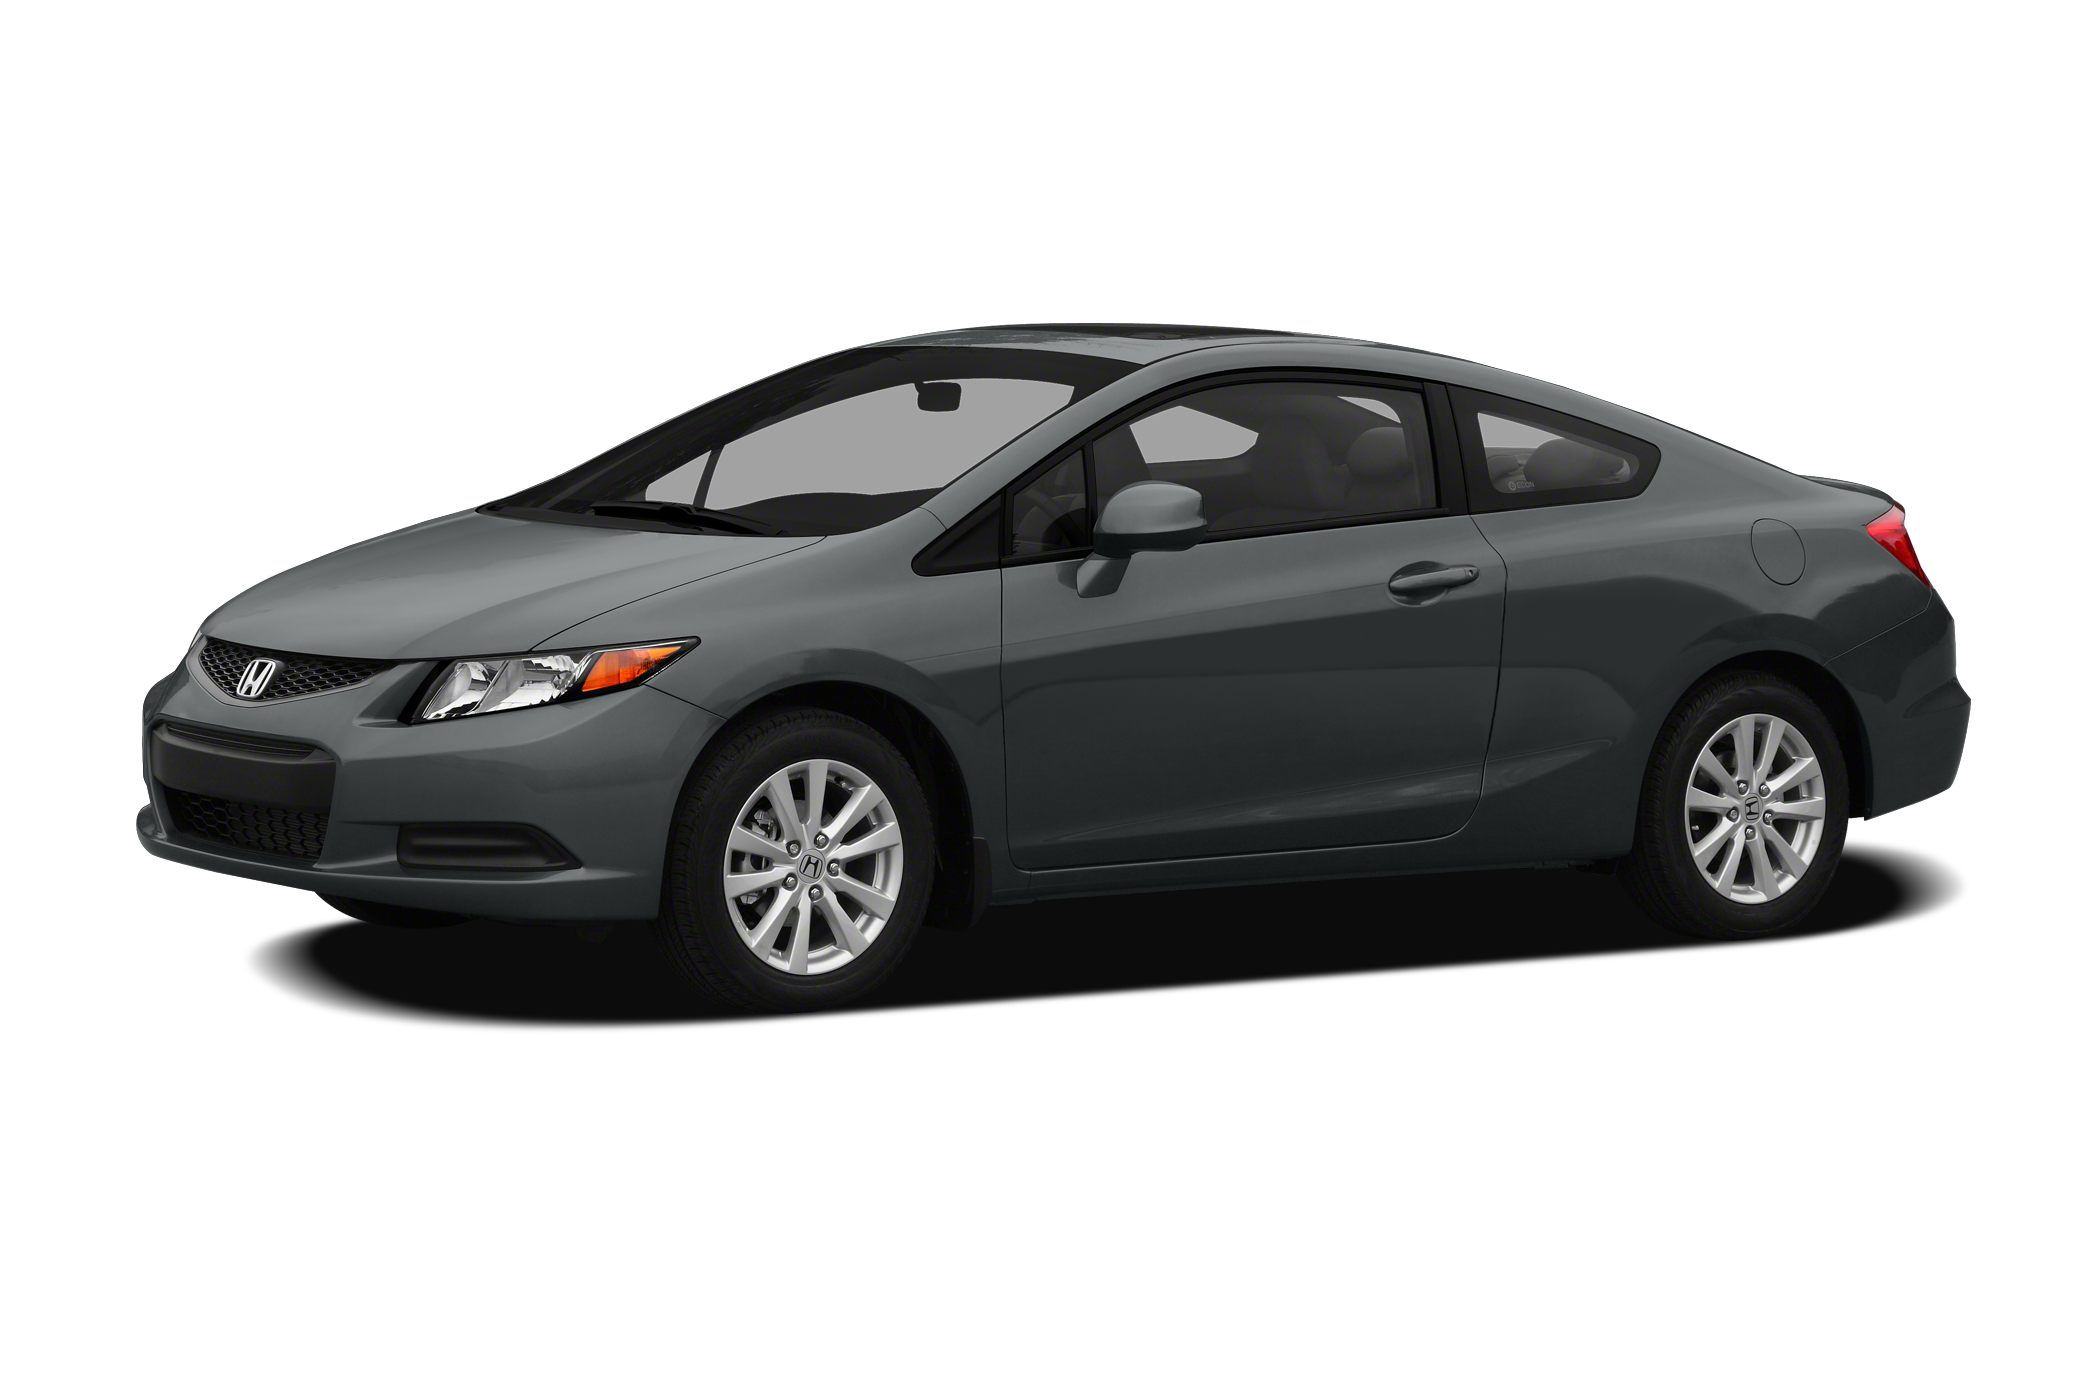 2012 Honda Civic LX Gray Cloth Oh yeah Yes Yes Yes Buy a new Honda from Diamond Valley Honda